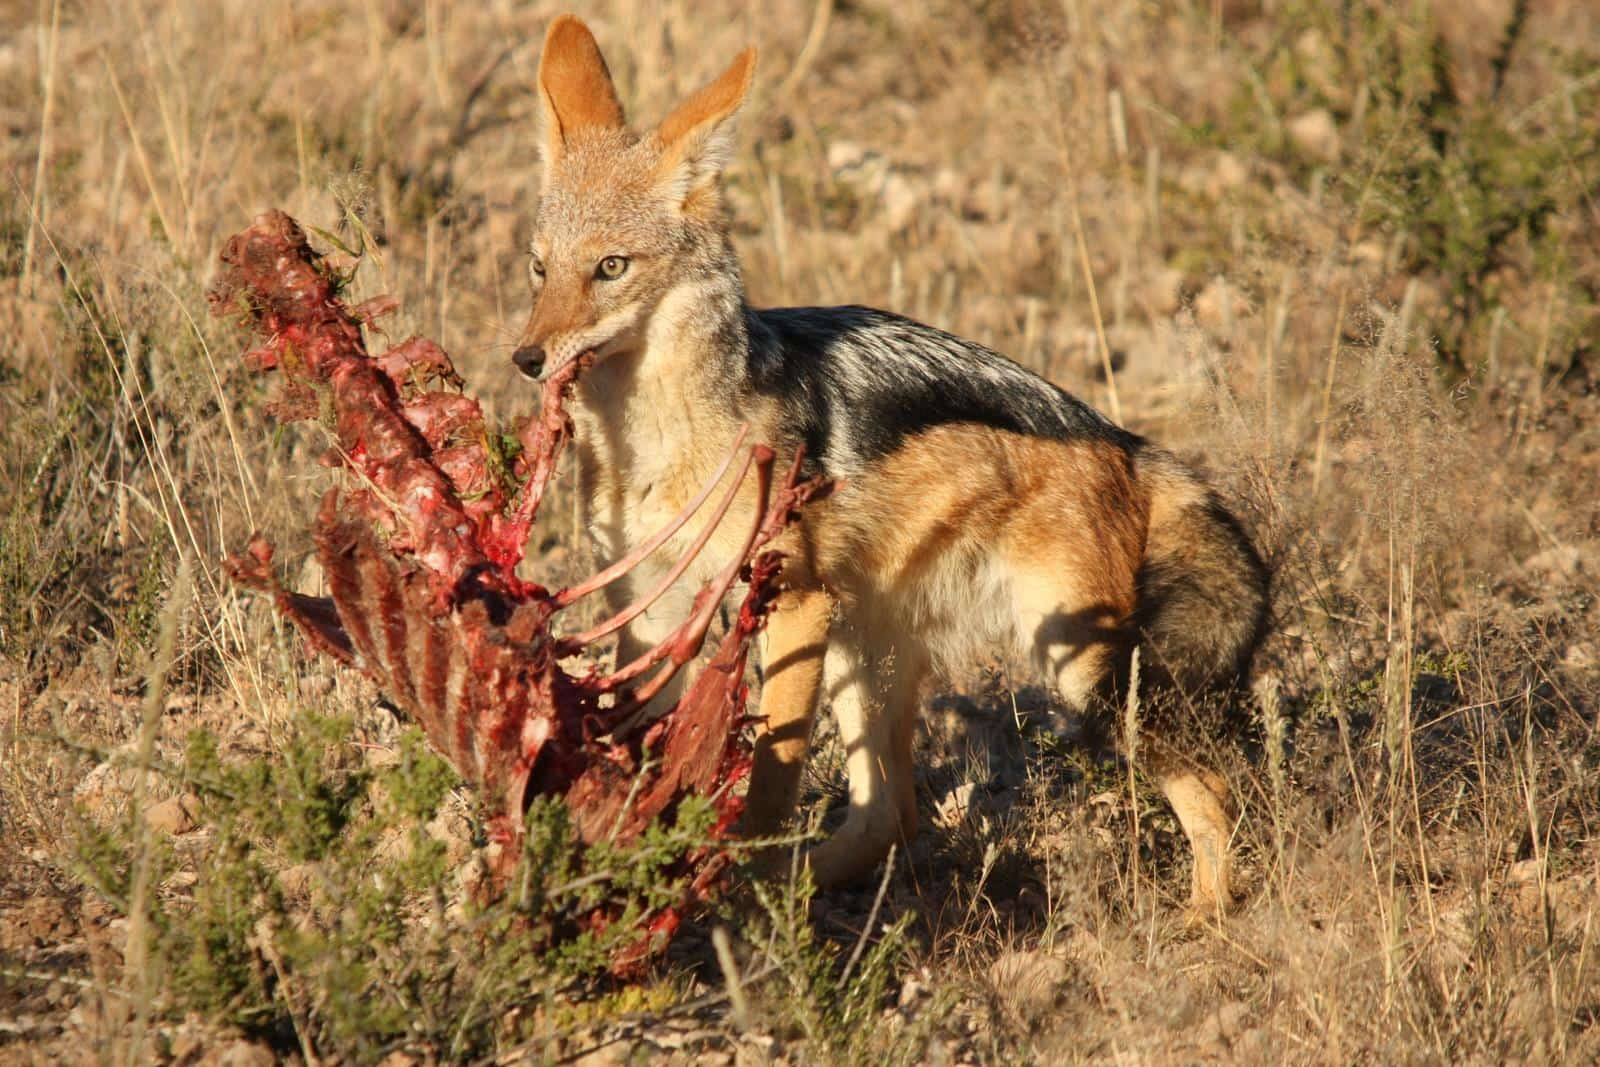 Black backed jackal in the Kgalagadi Transfrontier Park that straddles South Africa and Botswana. (Photo: Karin Theron)